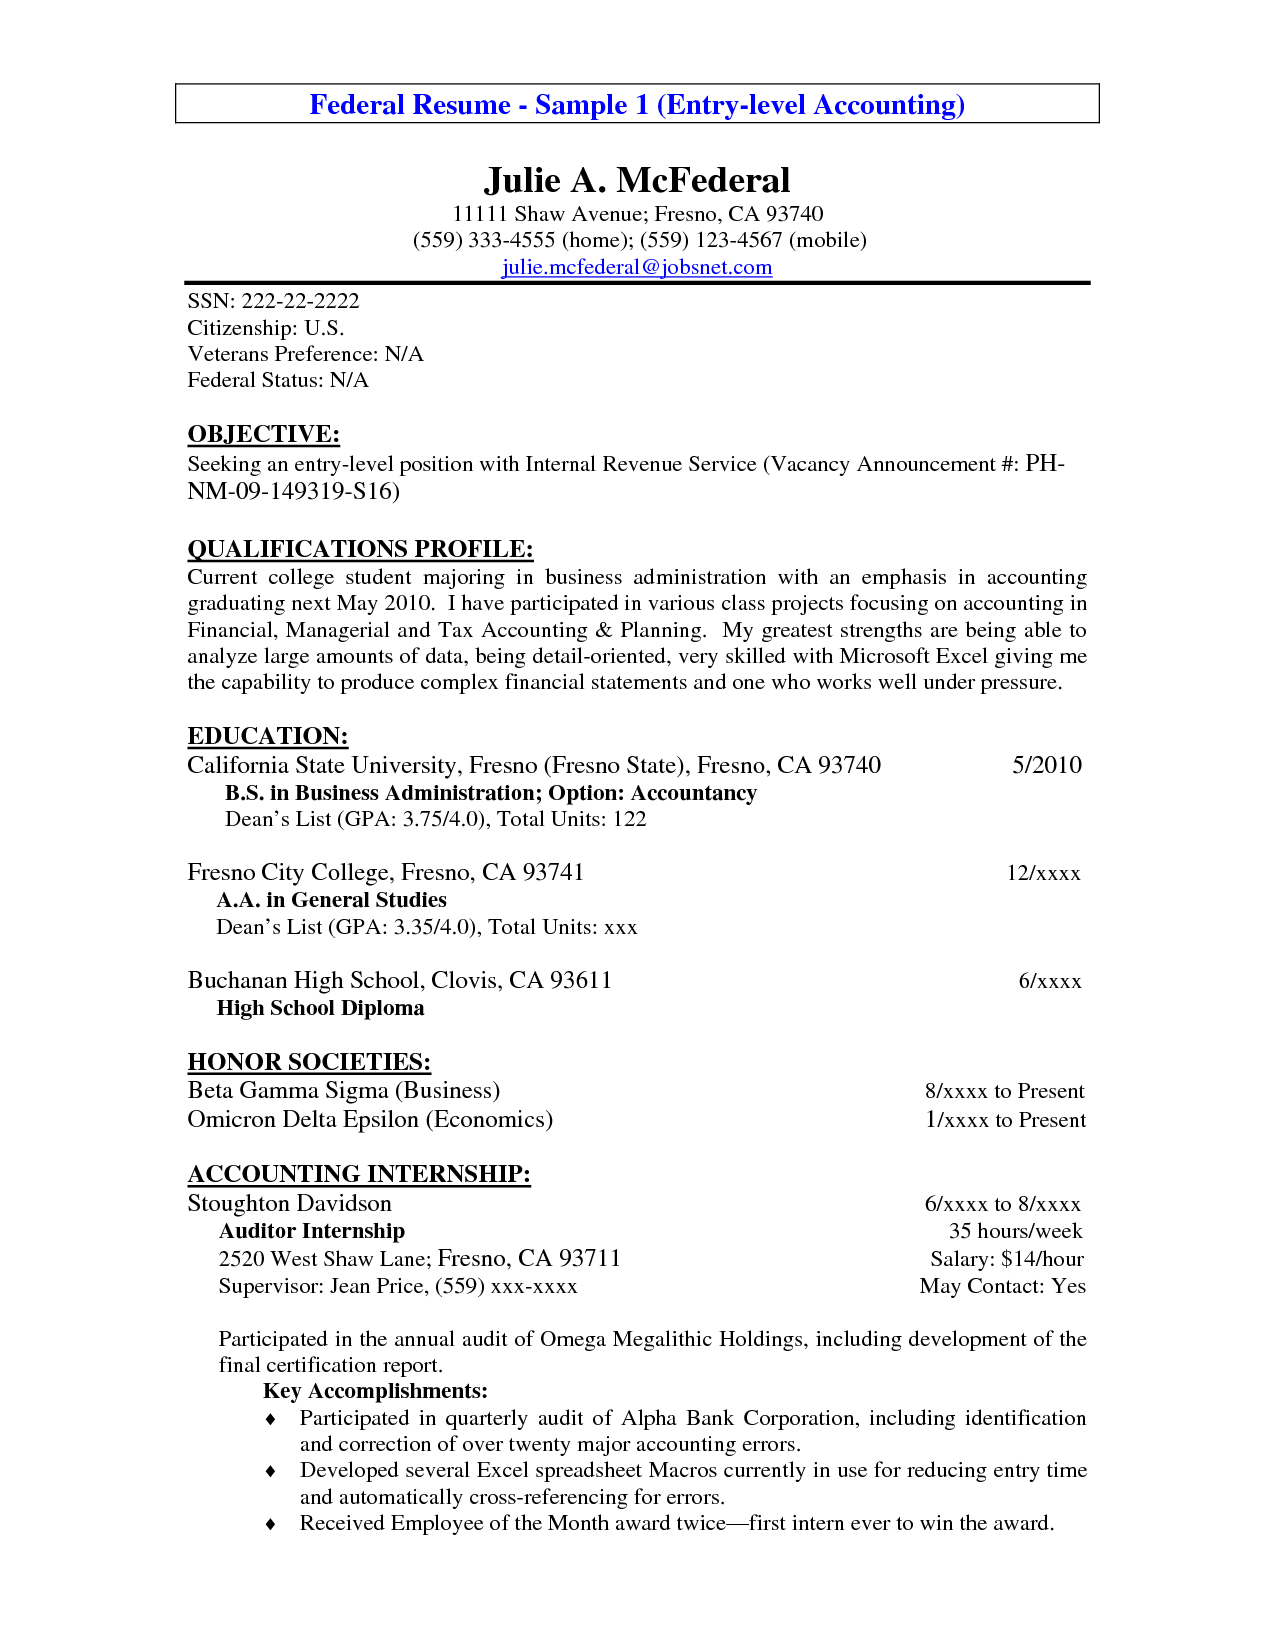 Entry Level Resume Sample Objective Examples Of A Resume Objective  Objective Resume Examples.  Sample Resume Objective